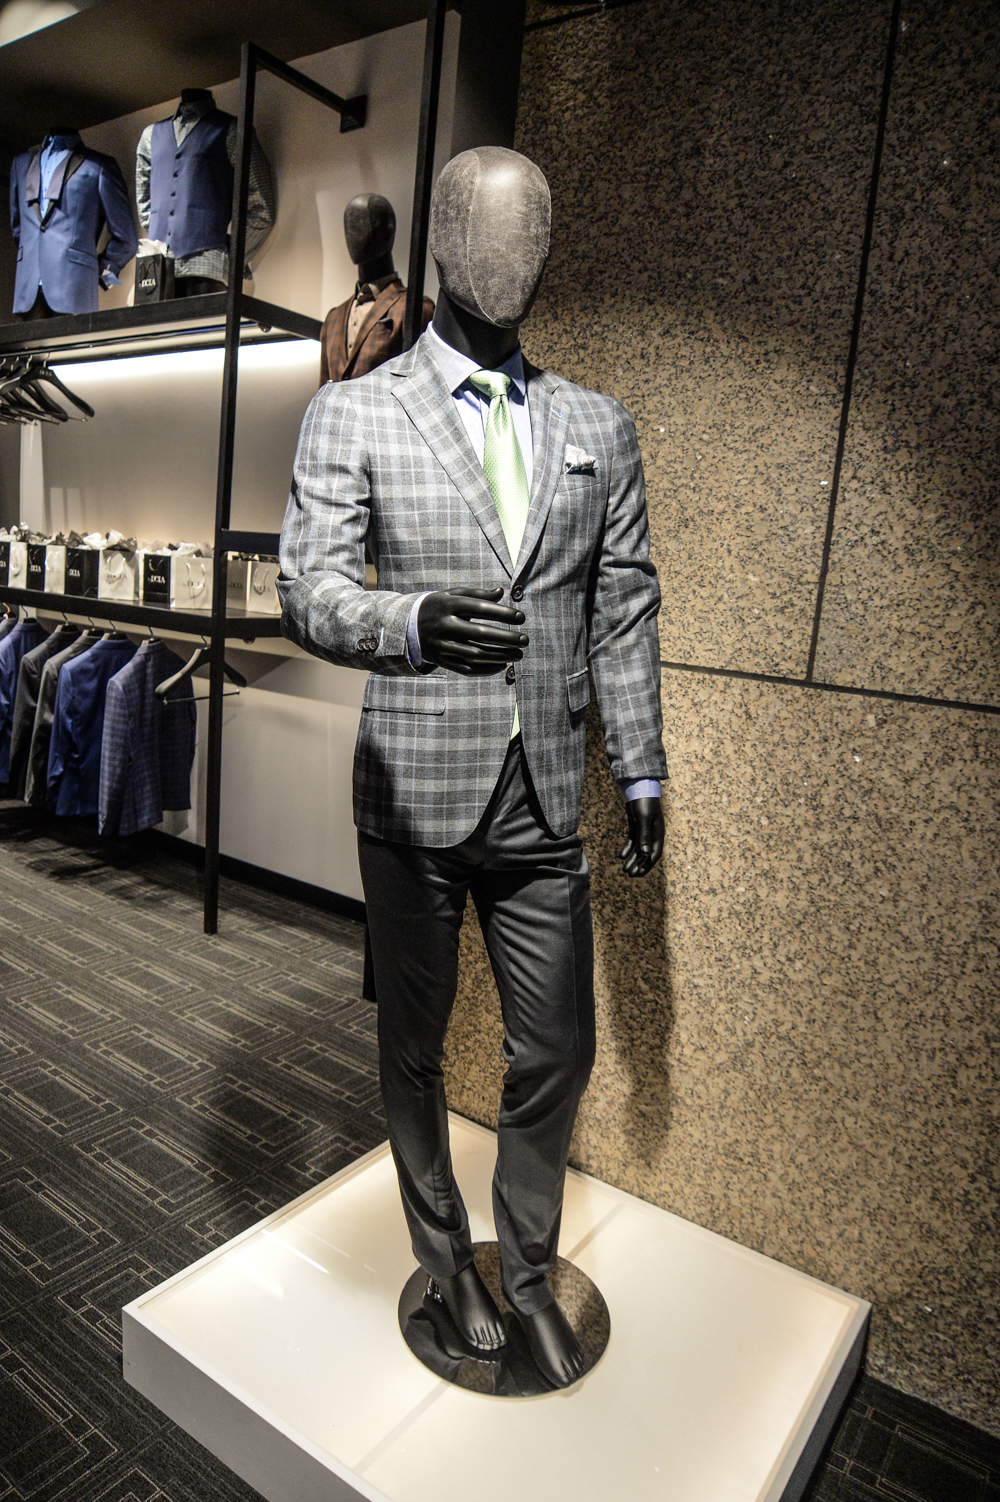 Sports Jacket by DCLA - Fabric by Tessilstrona